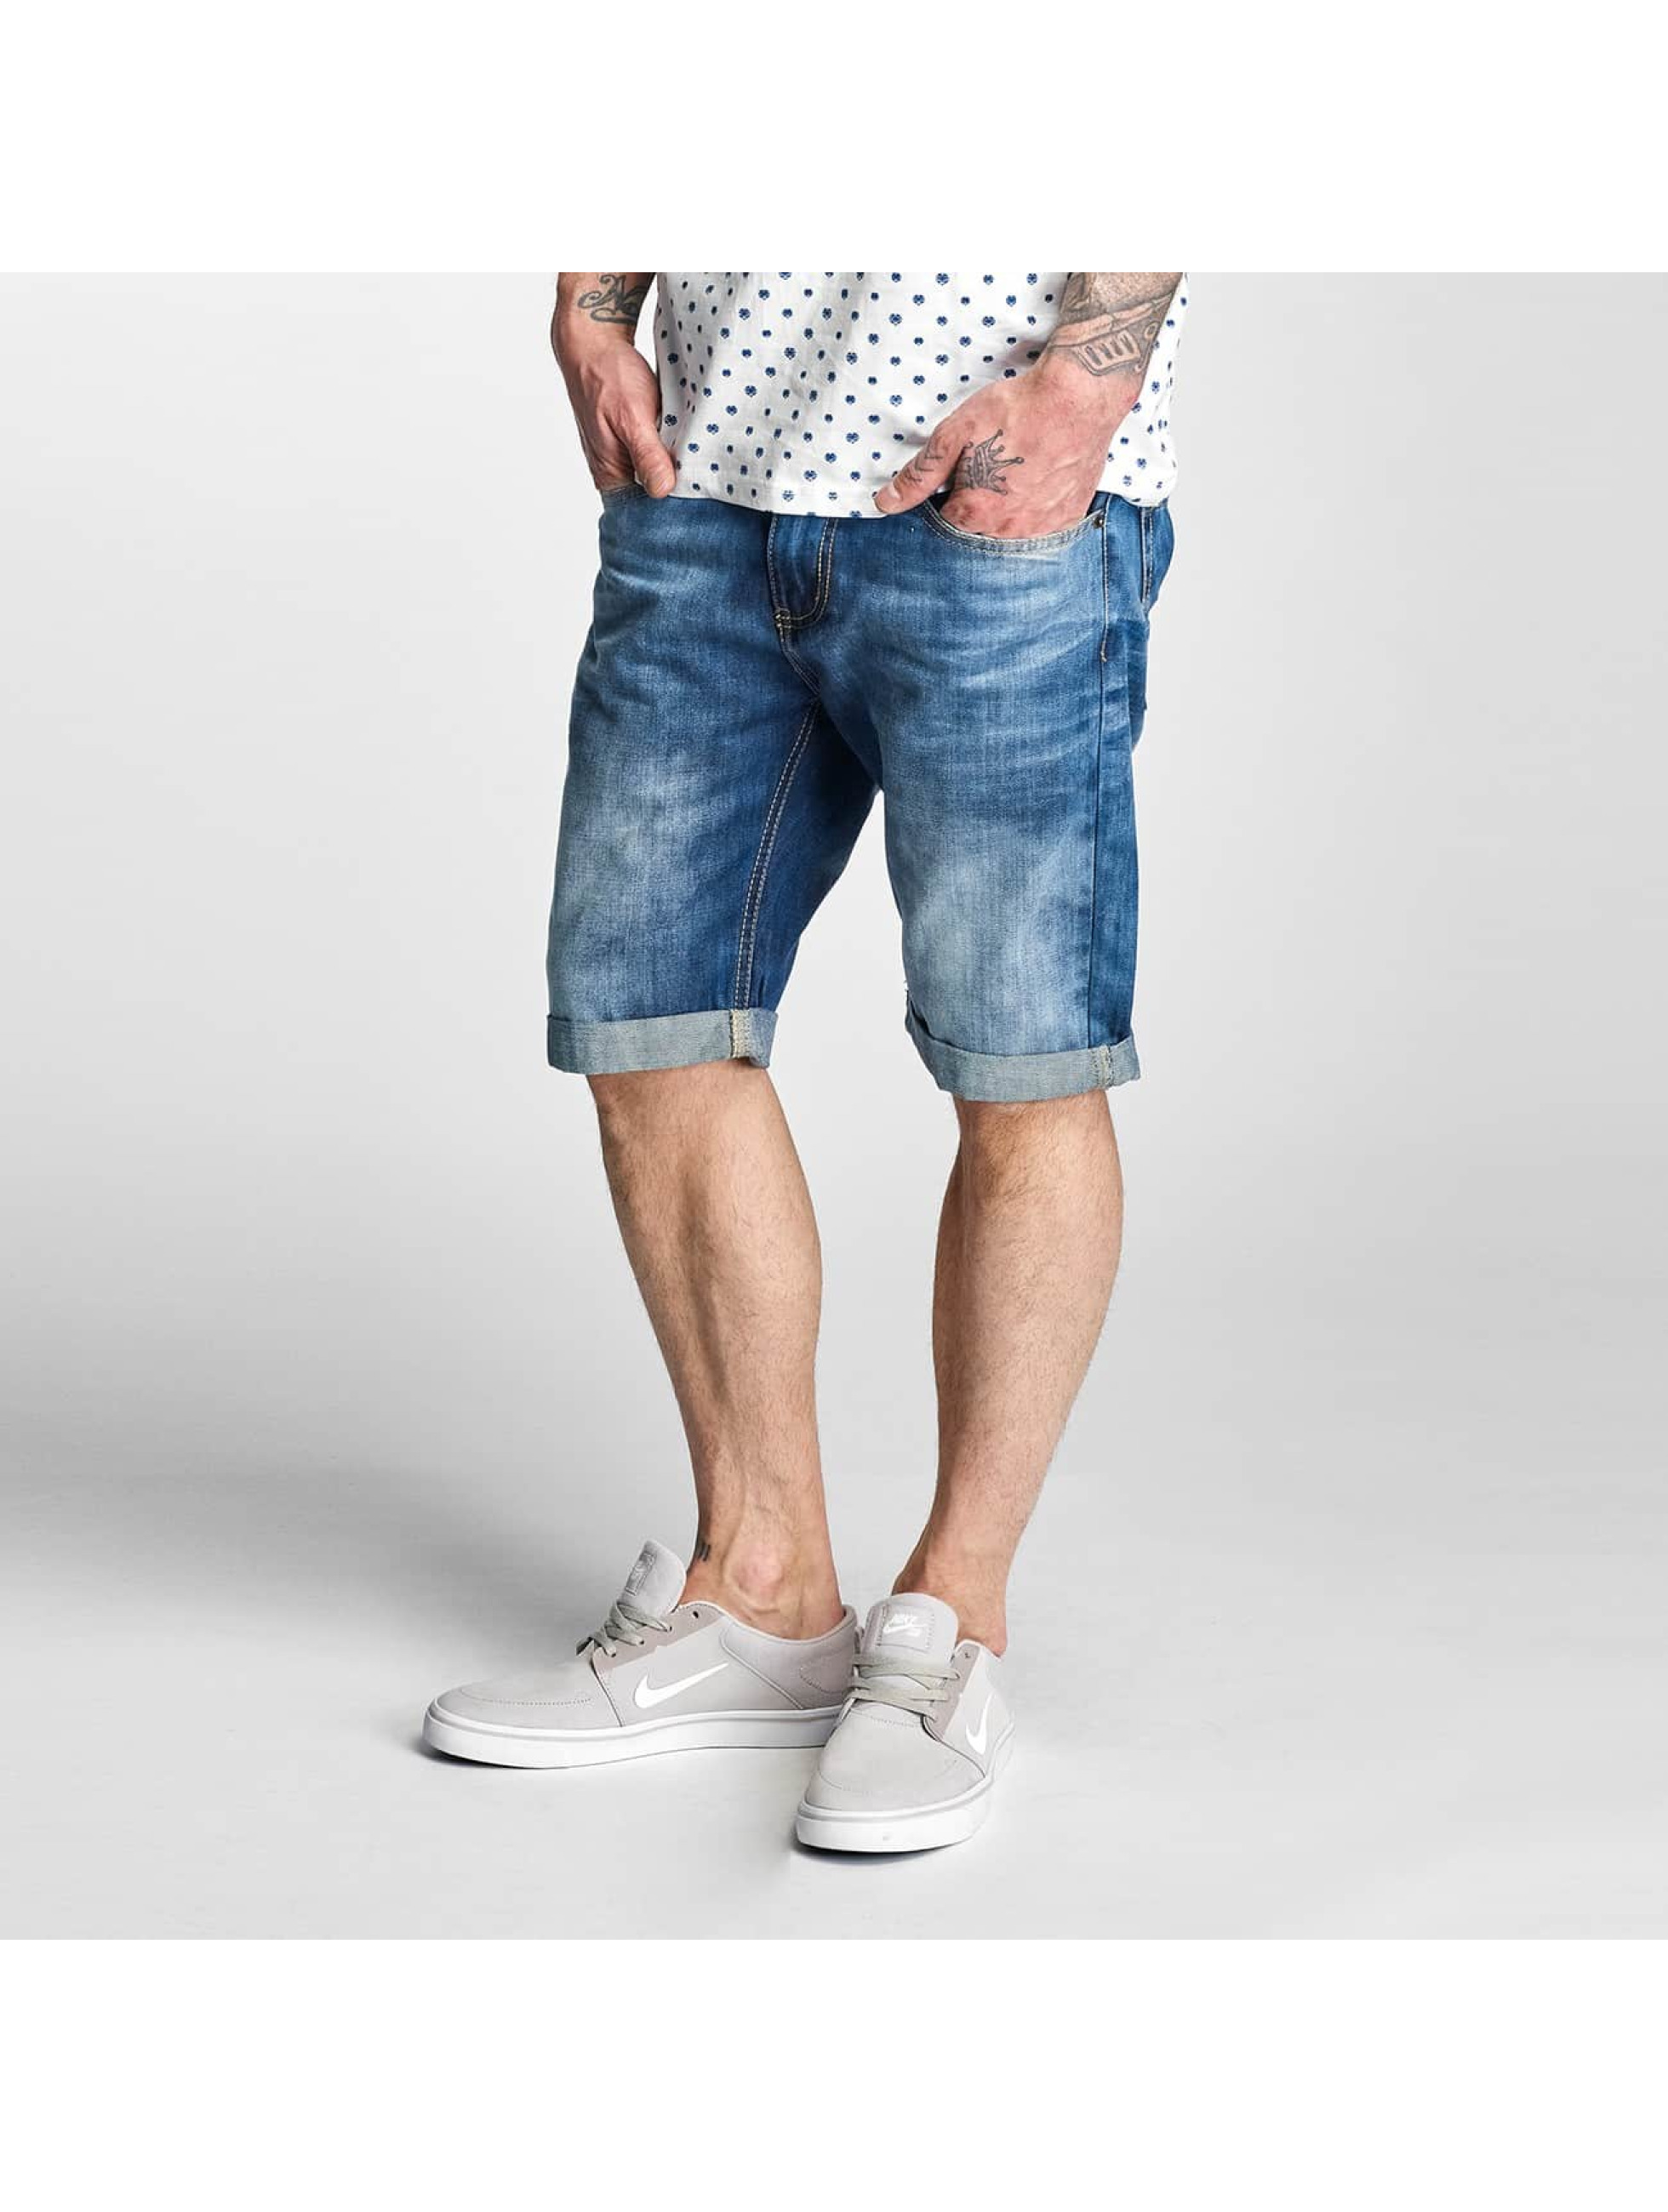 Rocawear / Short Relax Fit in blue W 38